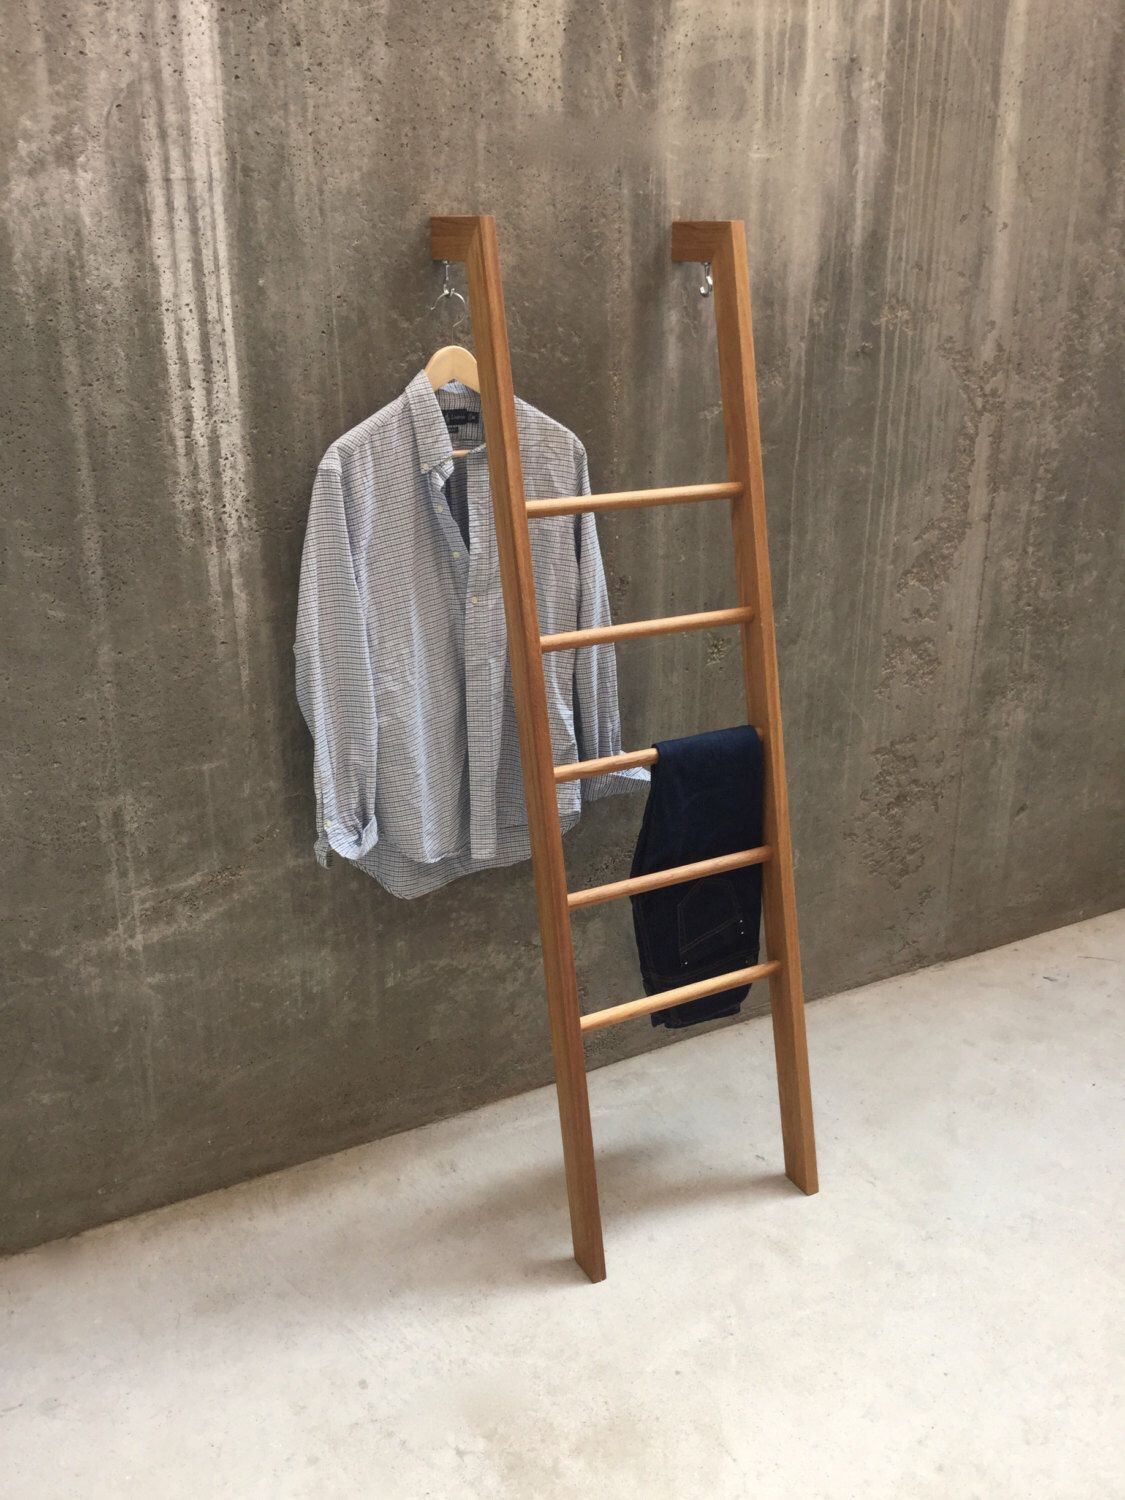 Tb 3 Modern Day Valet Stand Clothes Organiser In Oak Kleiderleiter Clothes Ladder Towel Ladder Handtuchhalter Stumme Diener Clothes Valets Diy Clothes Valet Clothing Rack